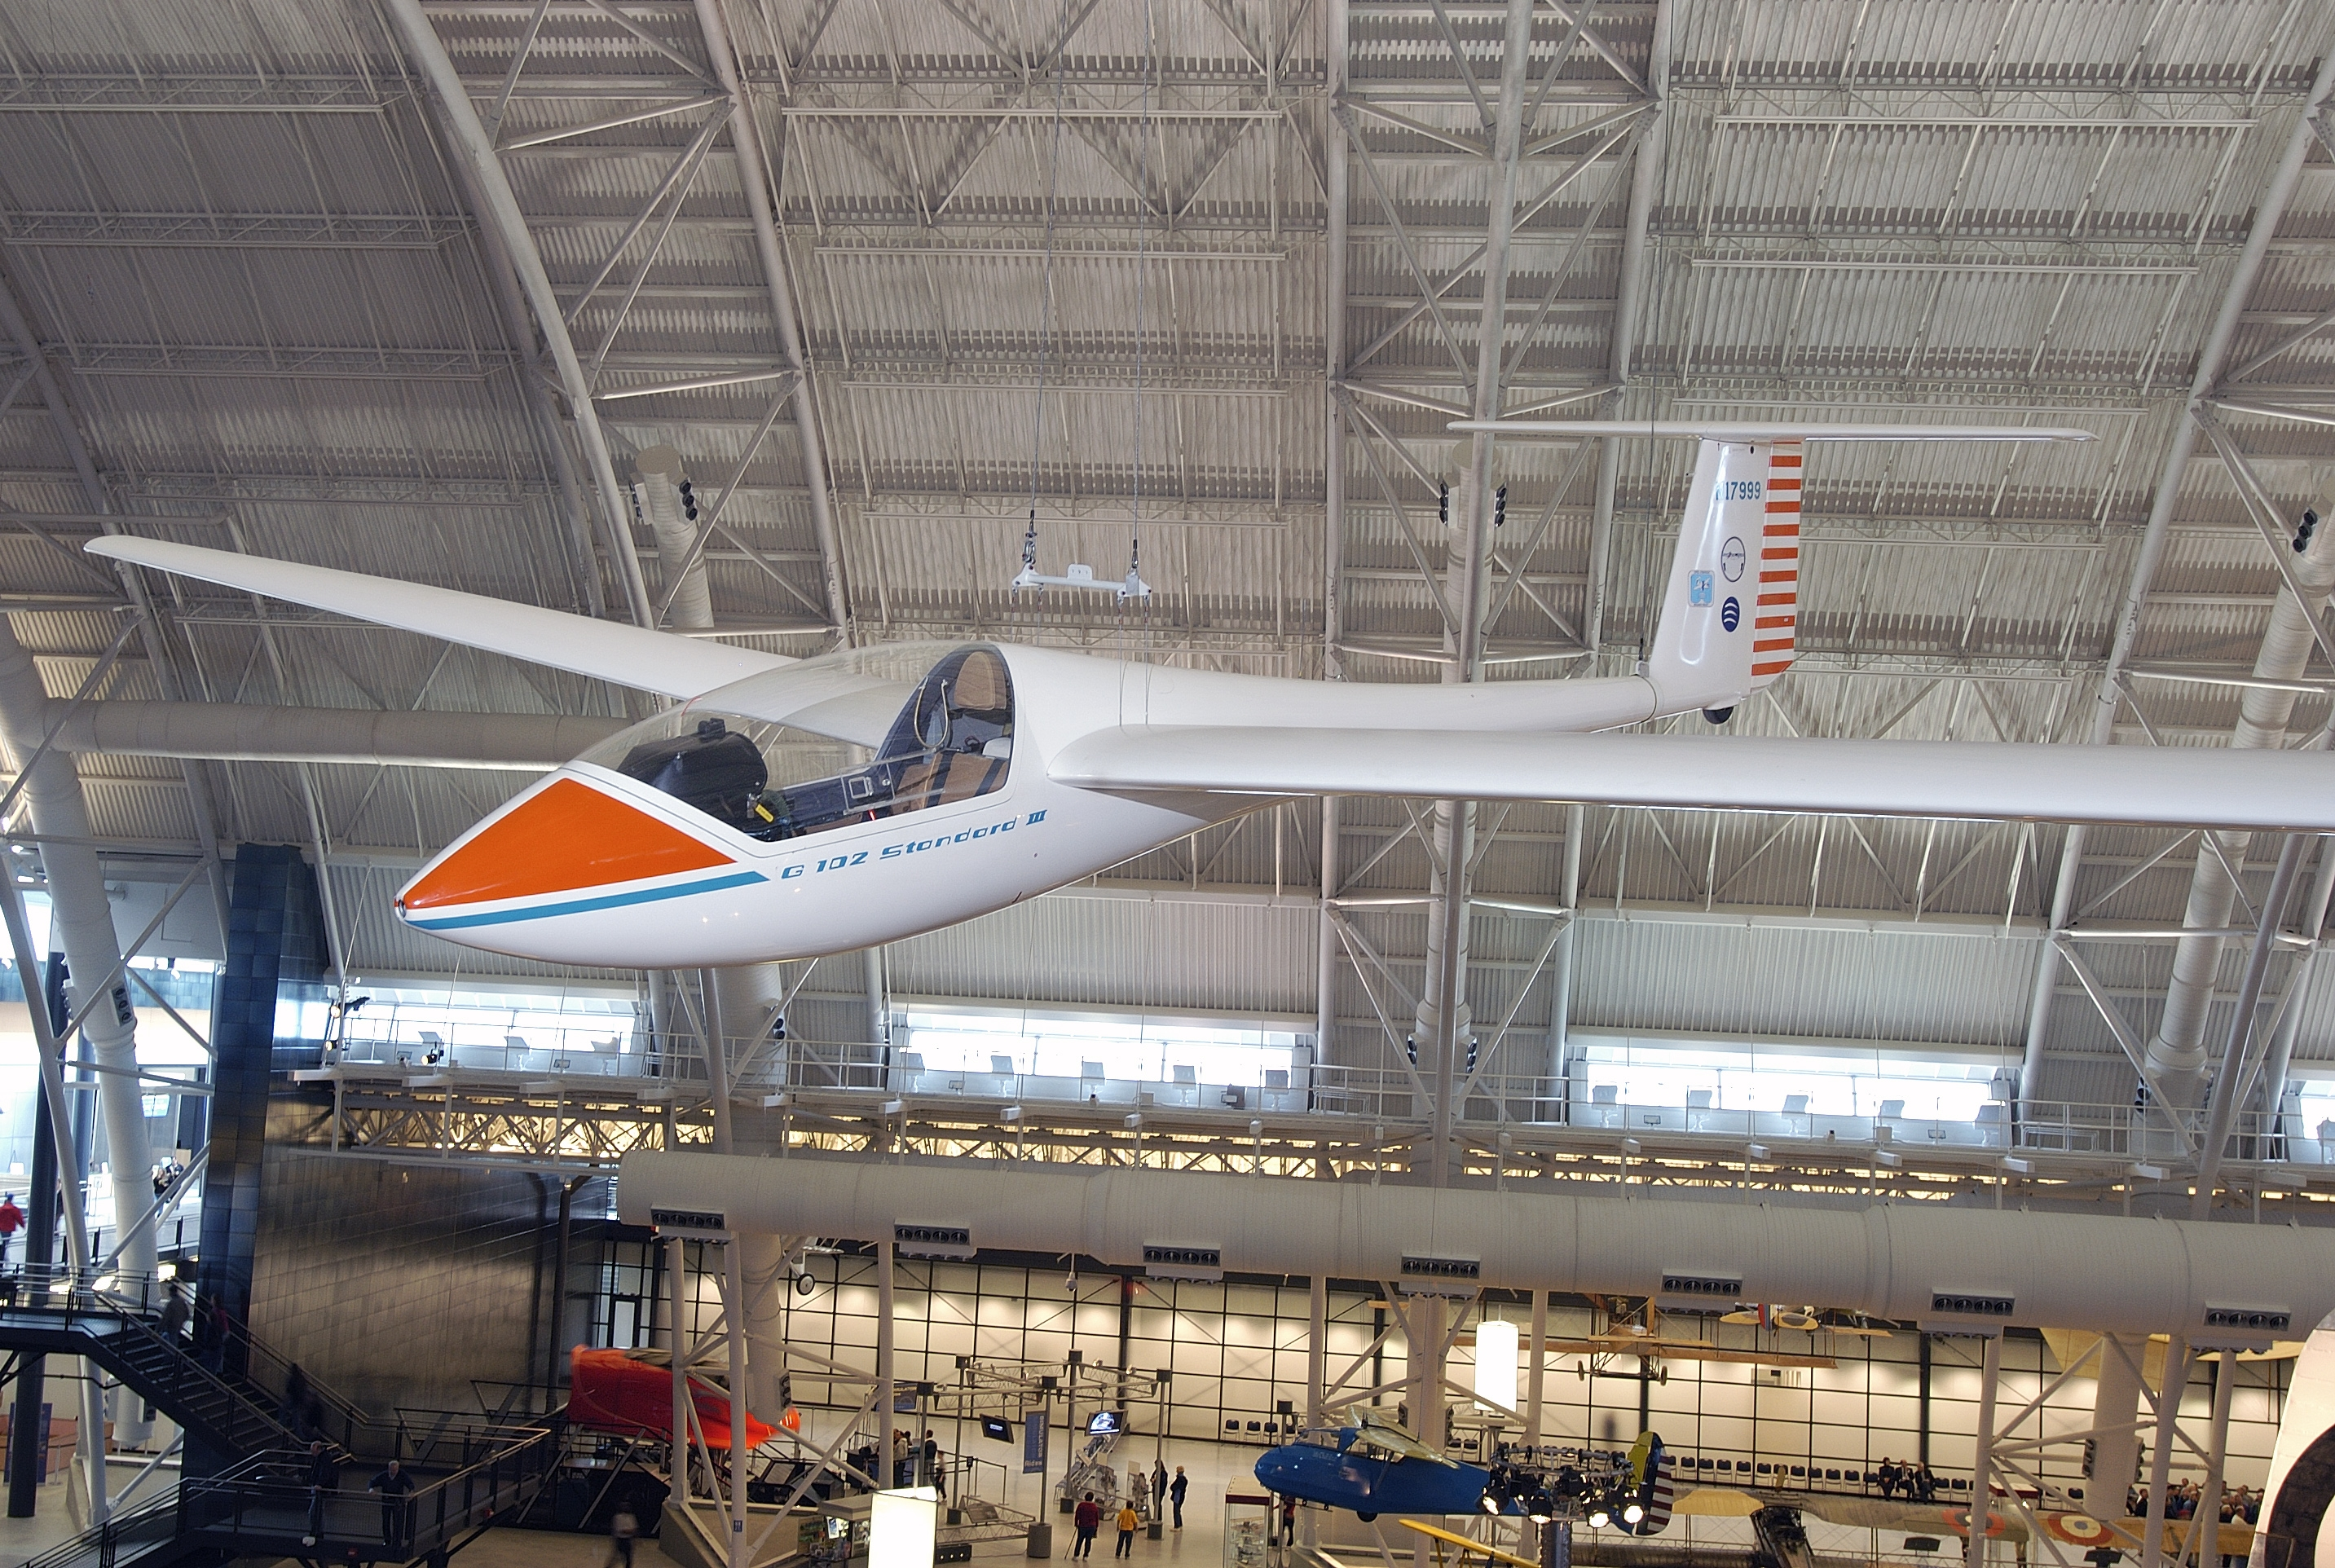 Grob 102 Standard Astir III at the Udvar-Hazy Center